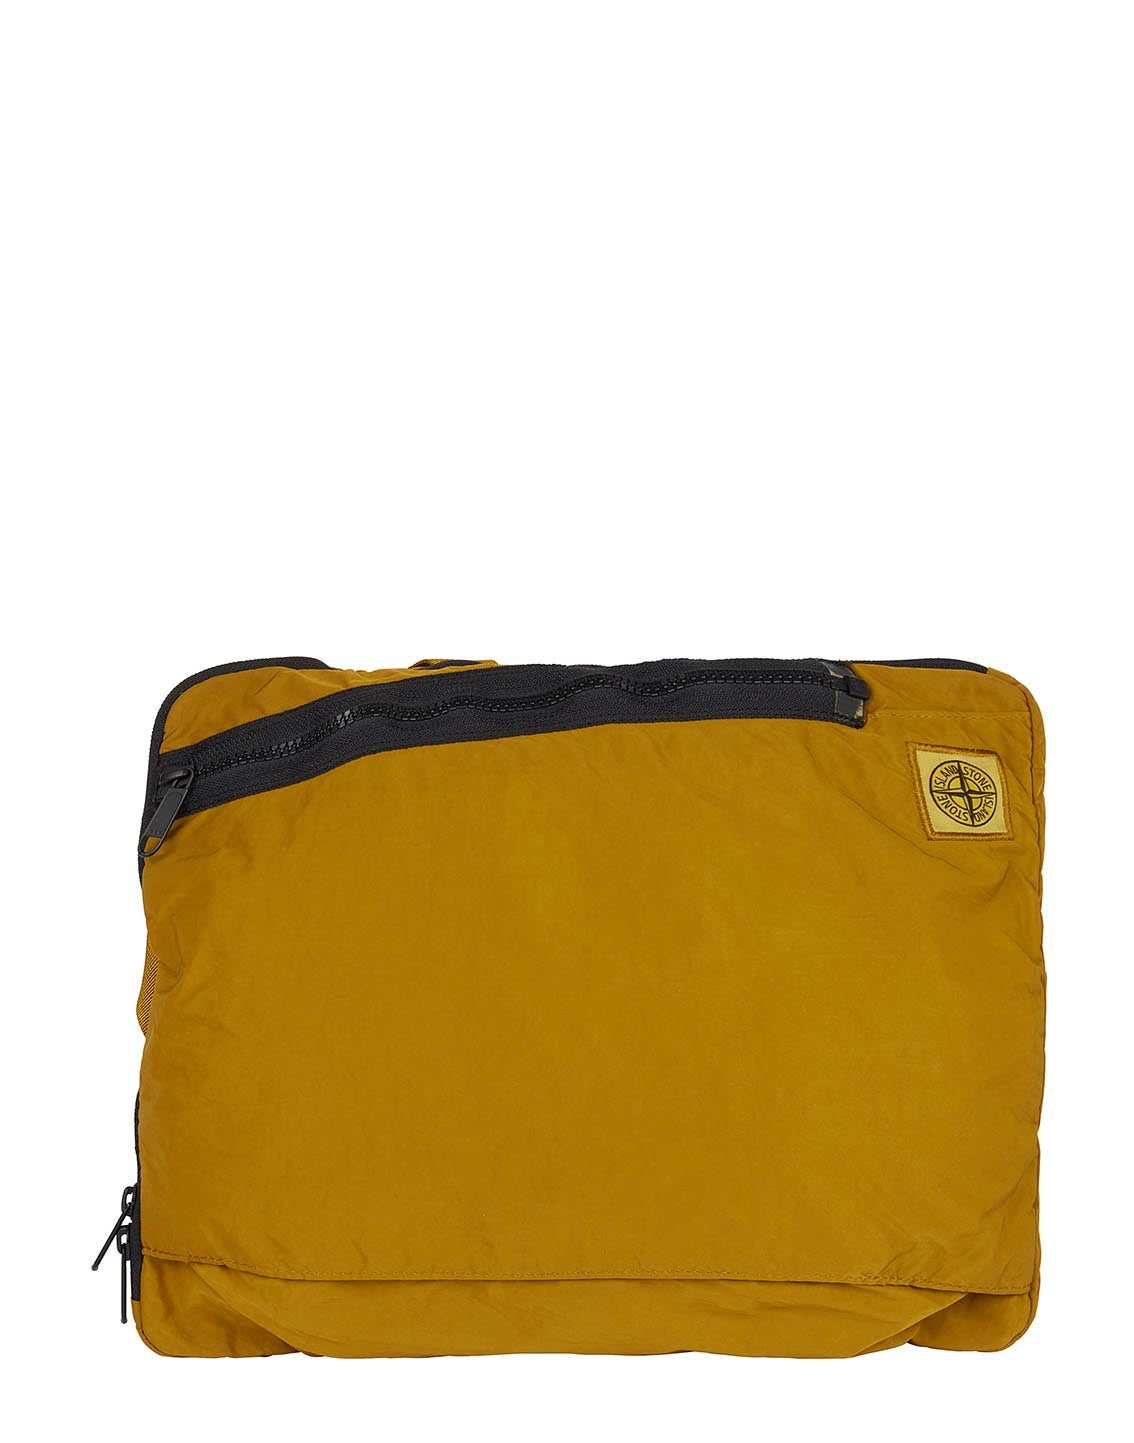 91570 Document Laptop Bag in Mustard